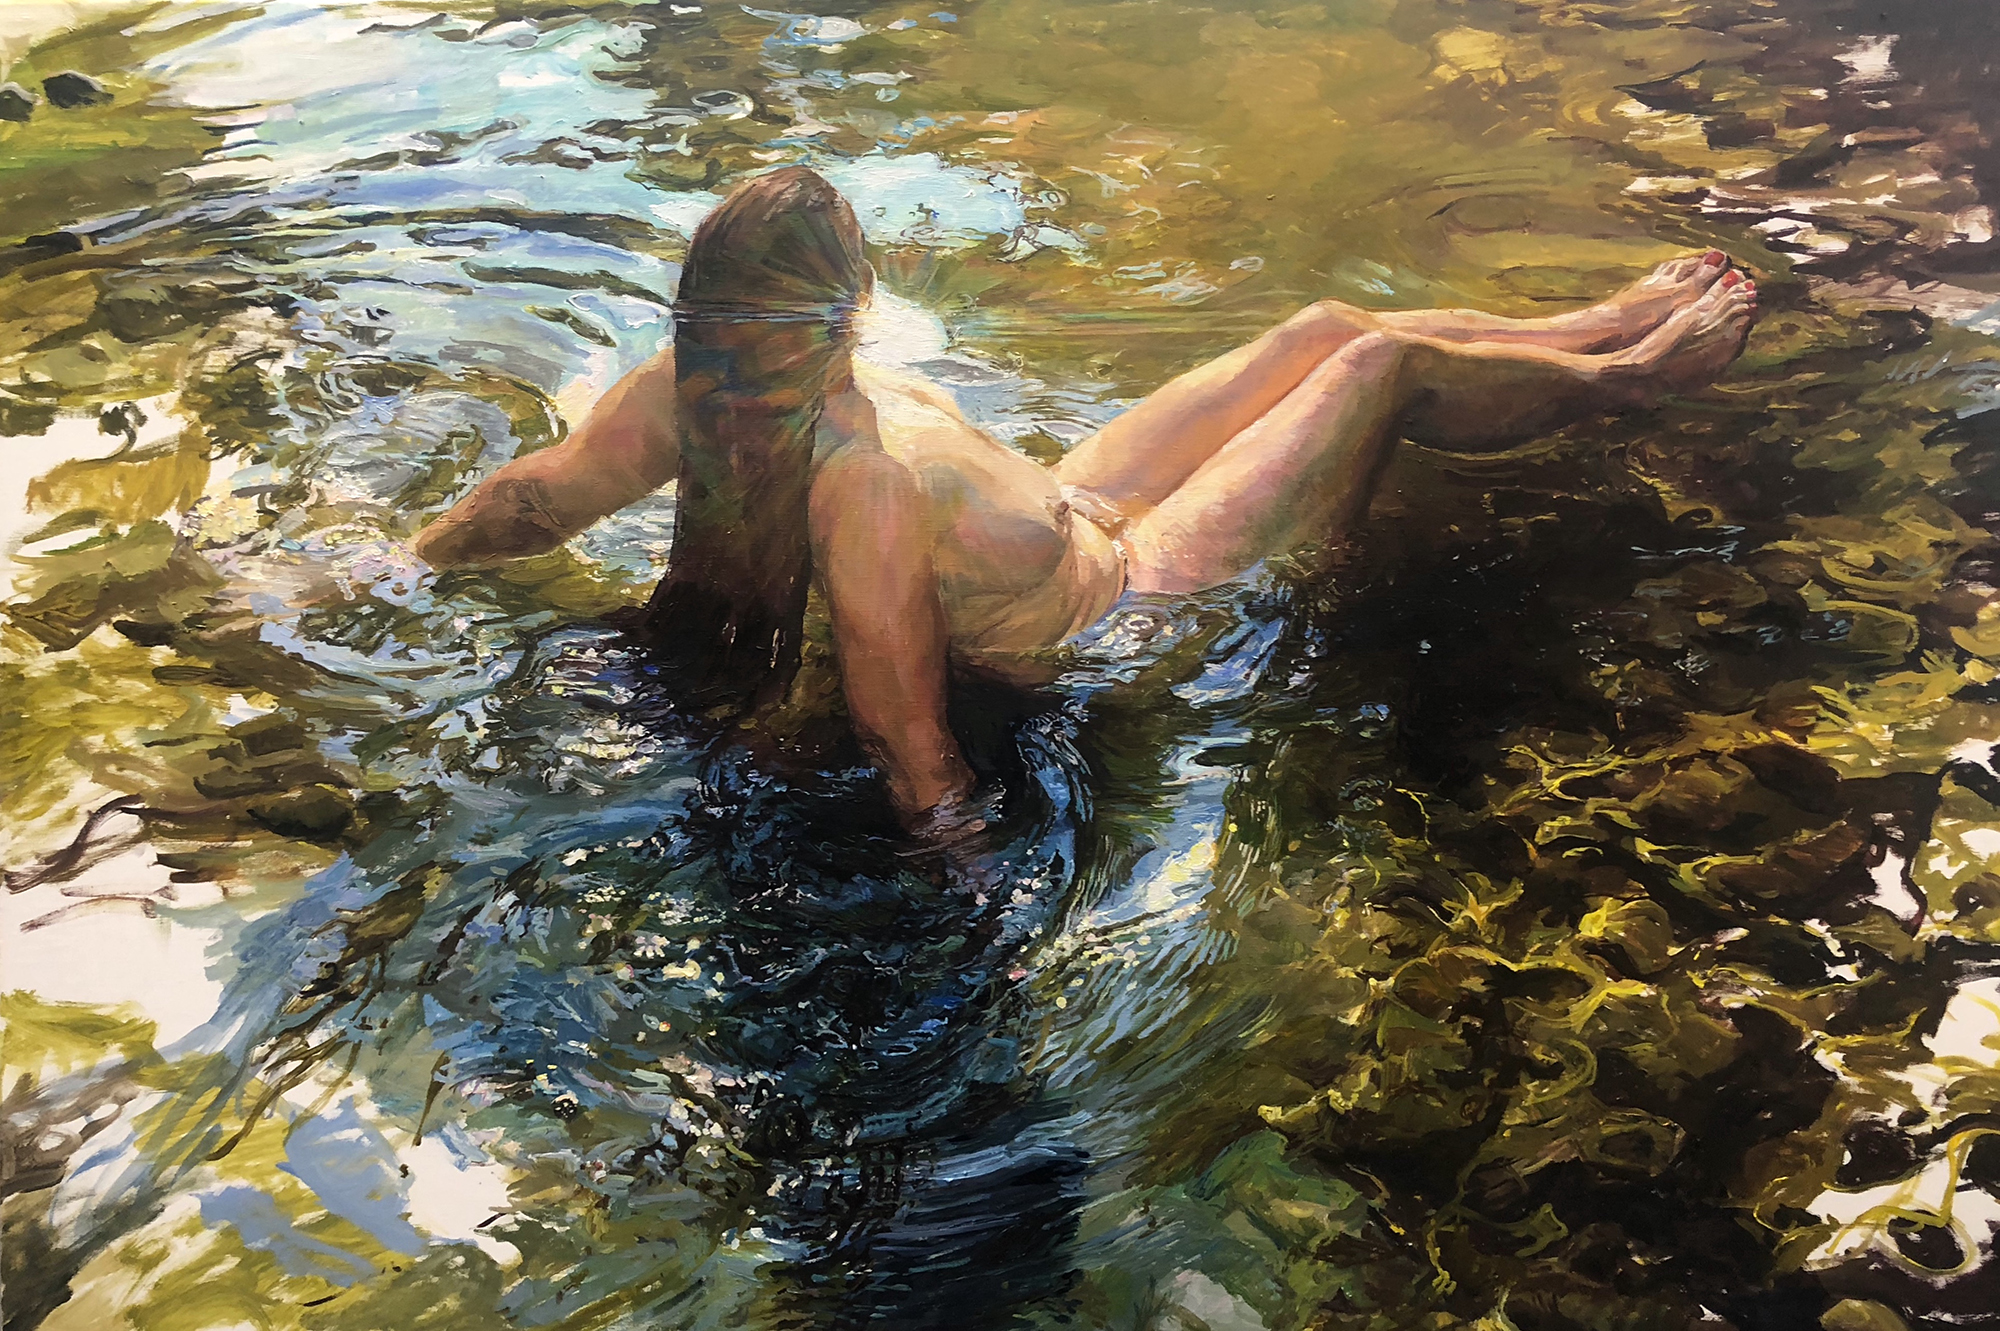 An oil painting of a naked woman sitting in water in the sunshine